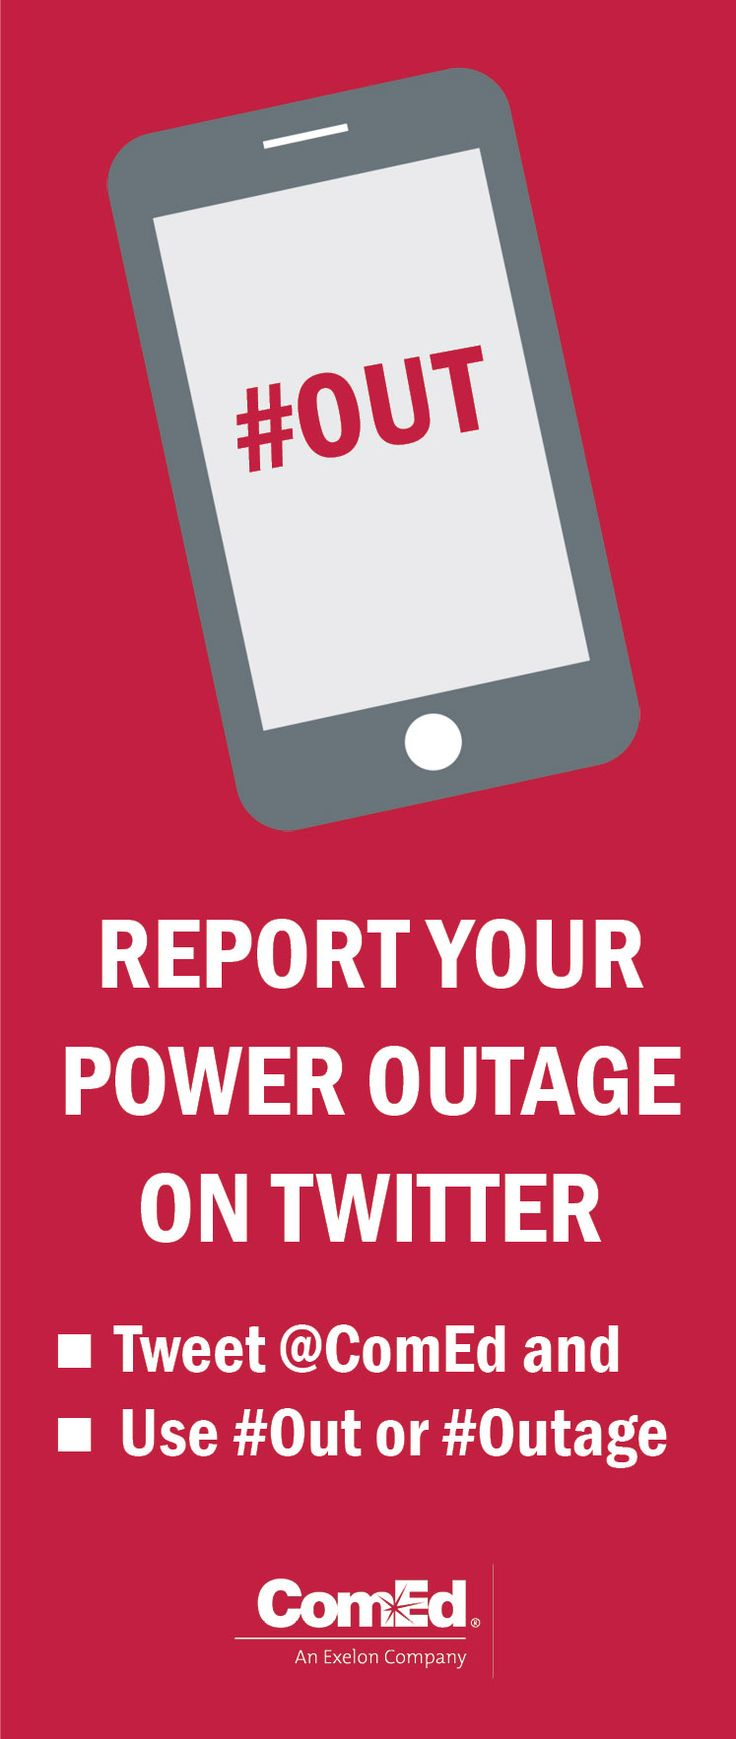 Stay ahead of the weather! Register your ComEd account number to your Twitter handle and tweet #OUT to report power outages.